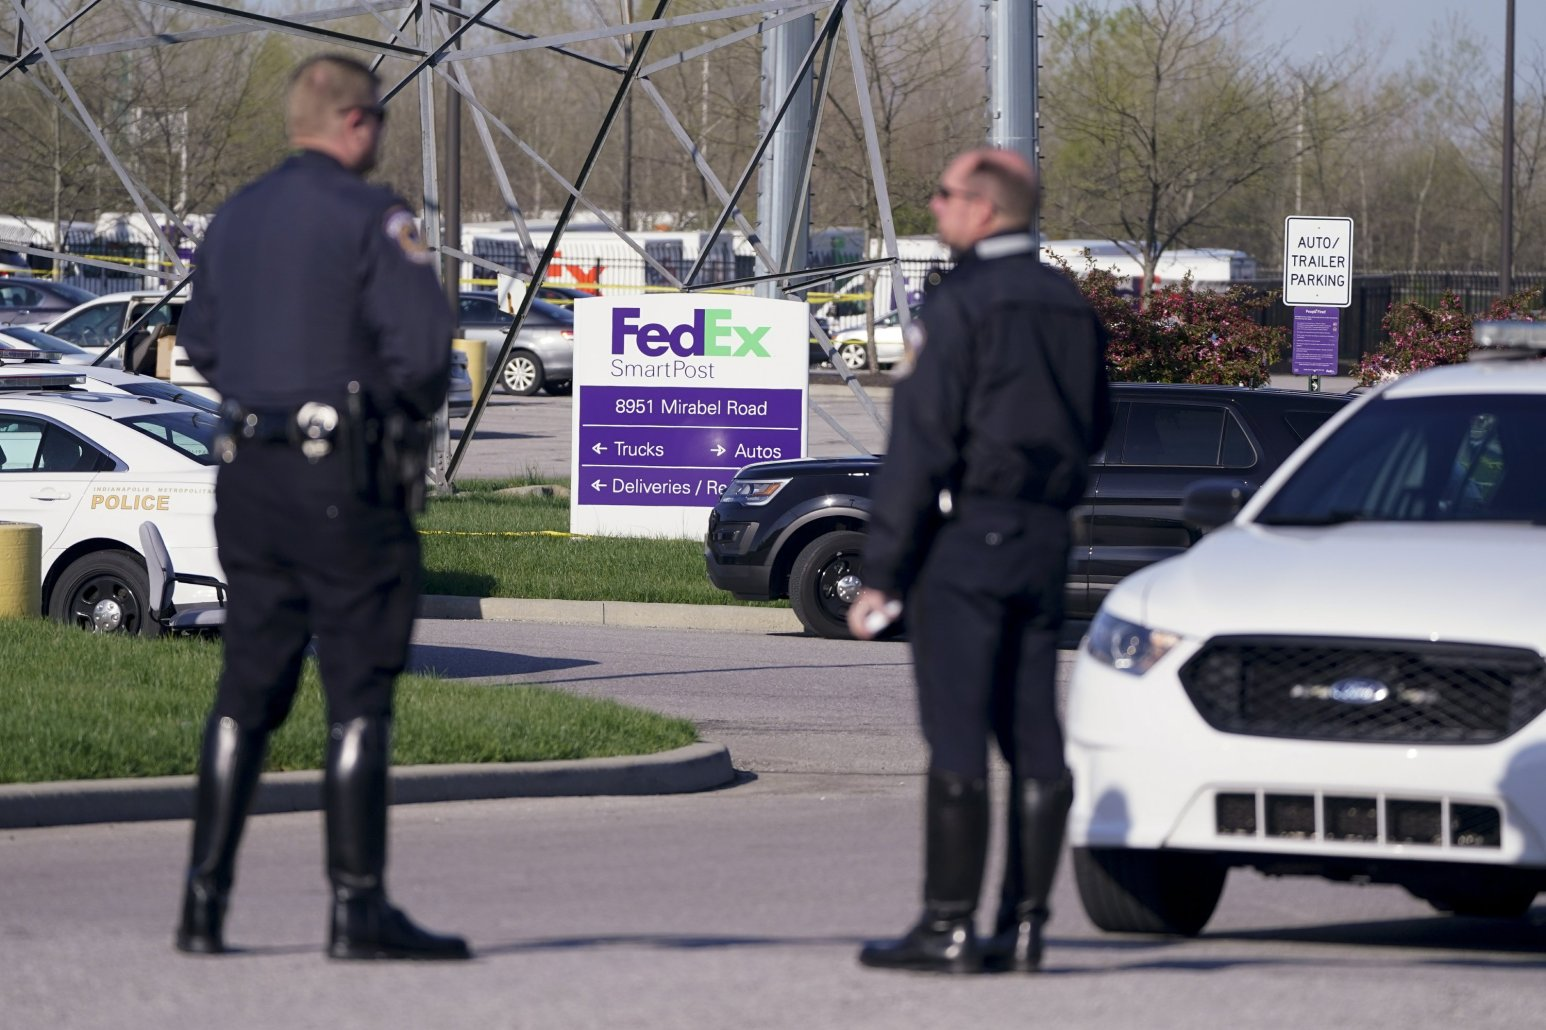 Police 8 dead in shooting at FedEx facility in Indianapolis